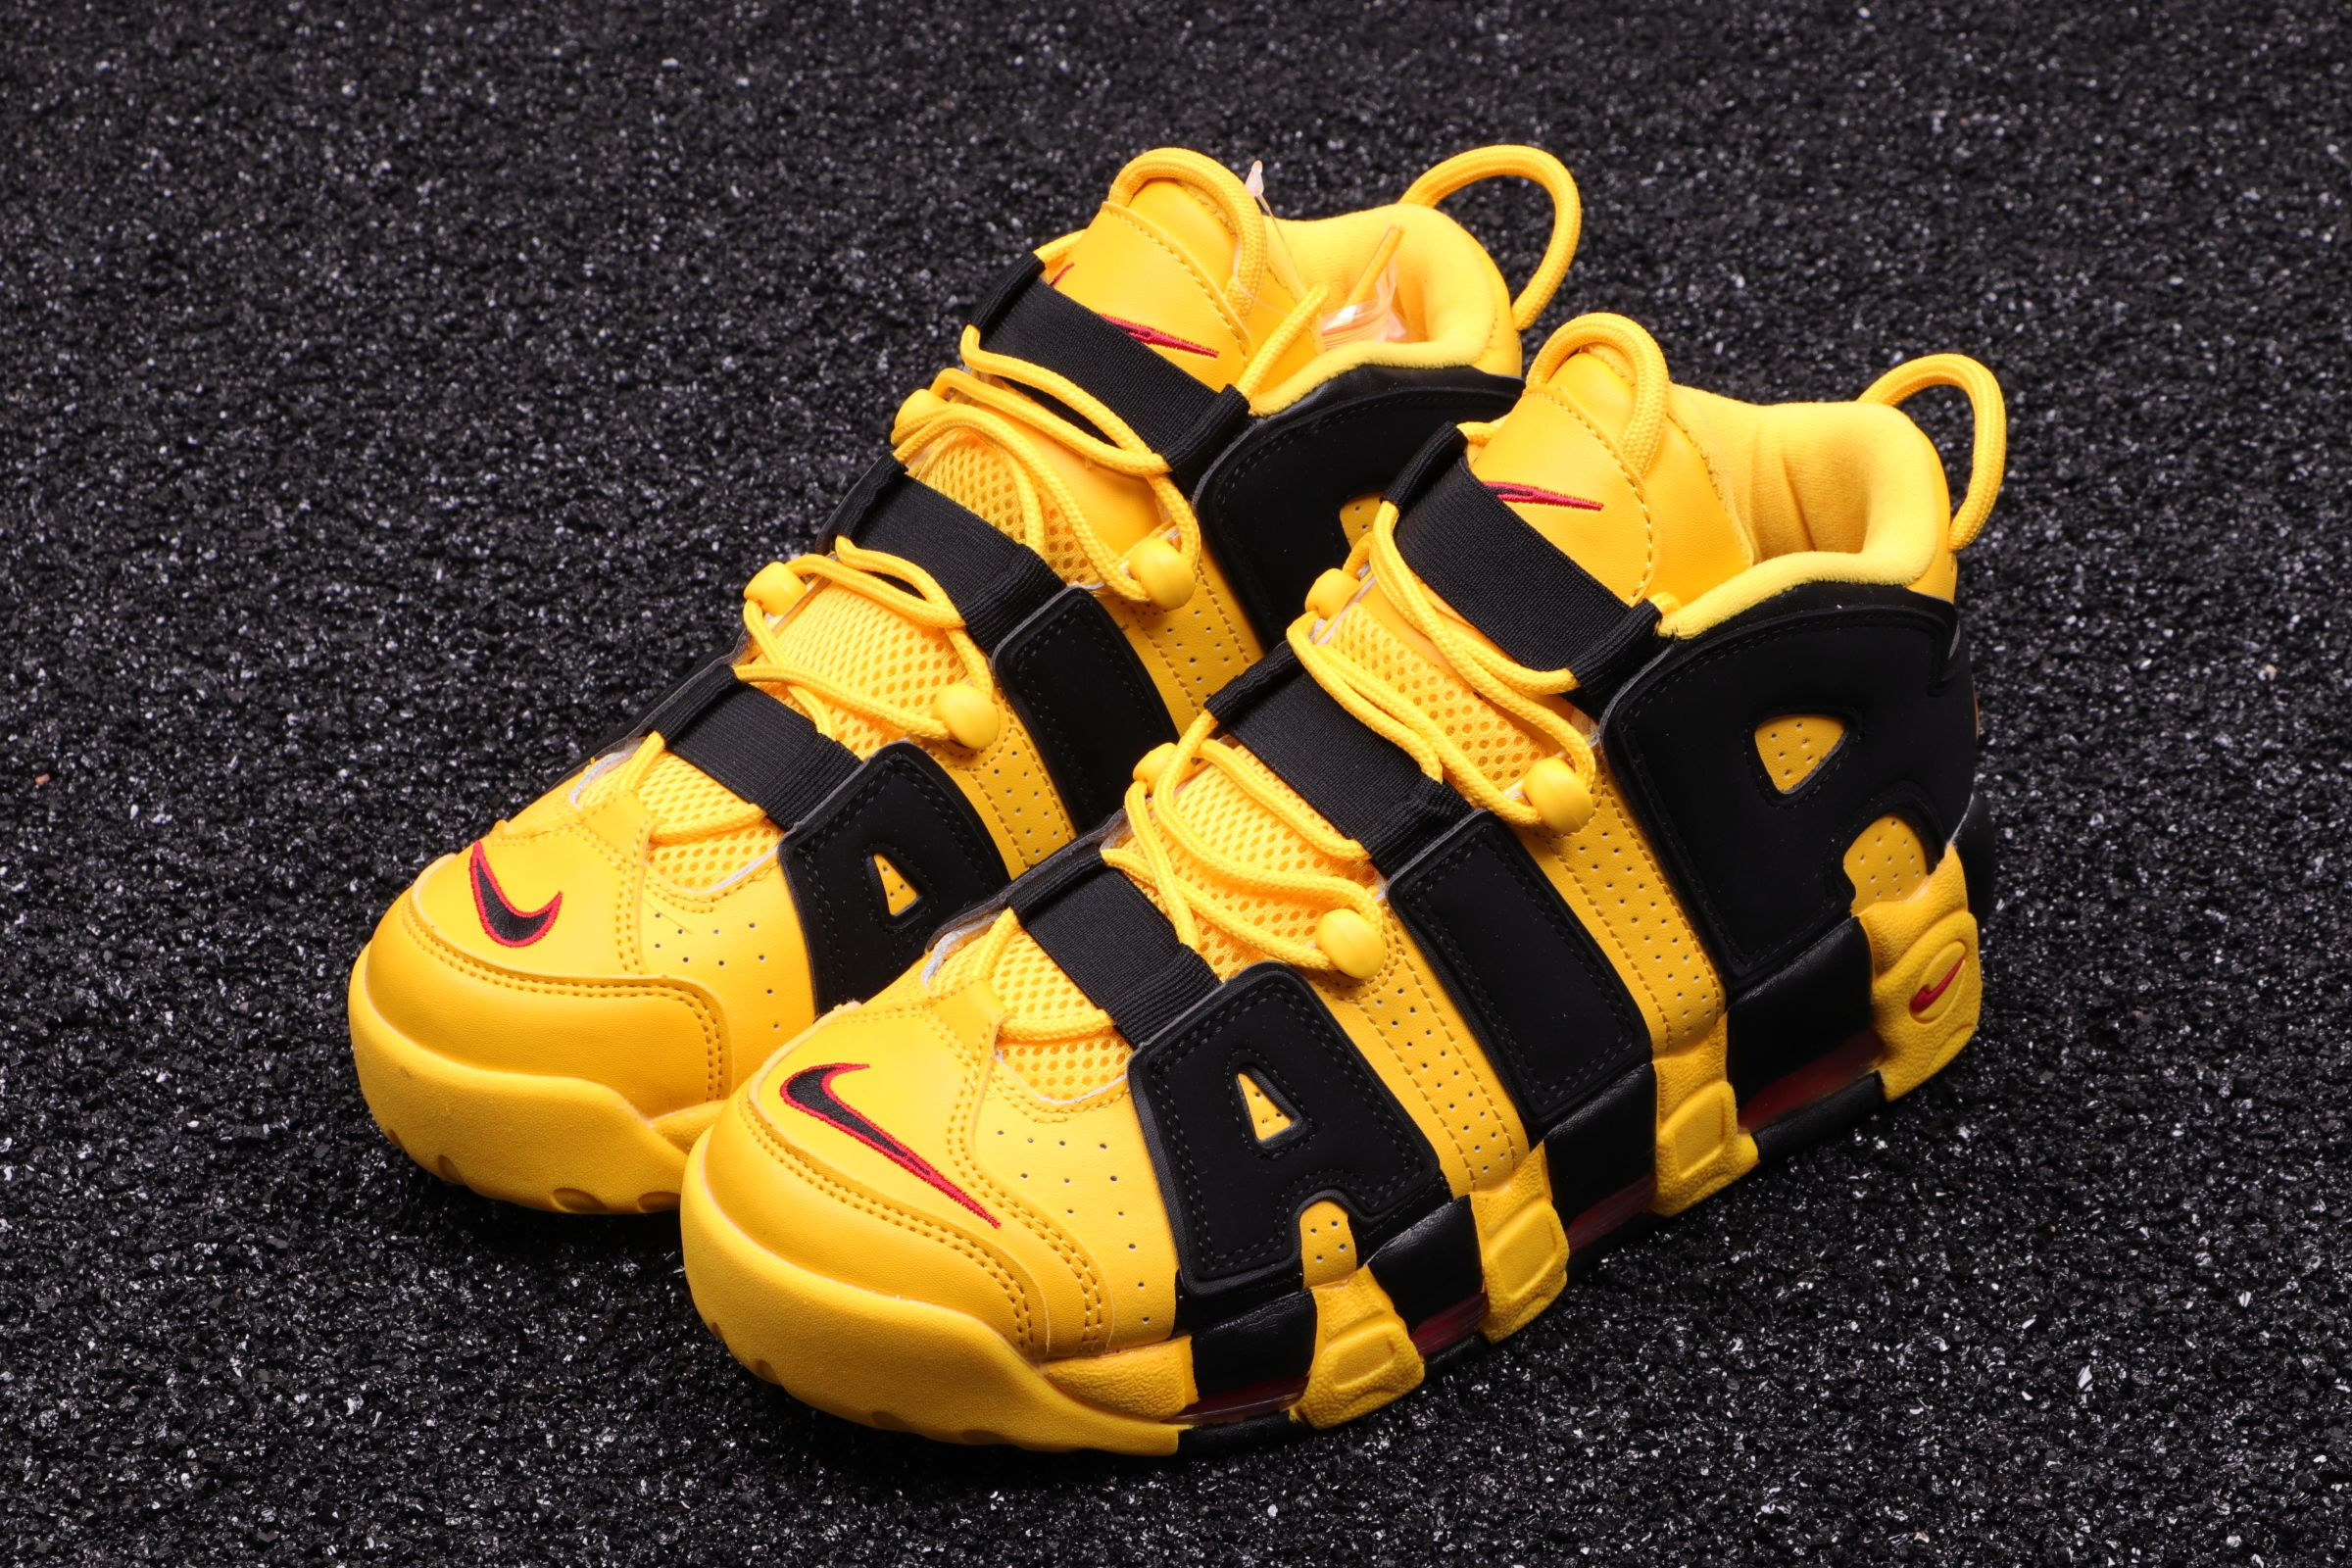 purchase cheap a7b53 634a9 NIKE AIR MORE UPTEMPO YELLOW TAXI BLACK 414962 700 #reebok ...